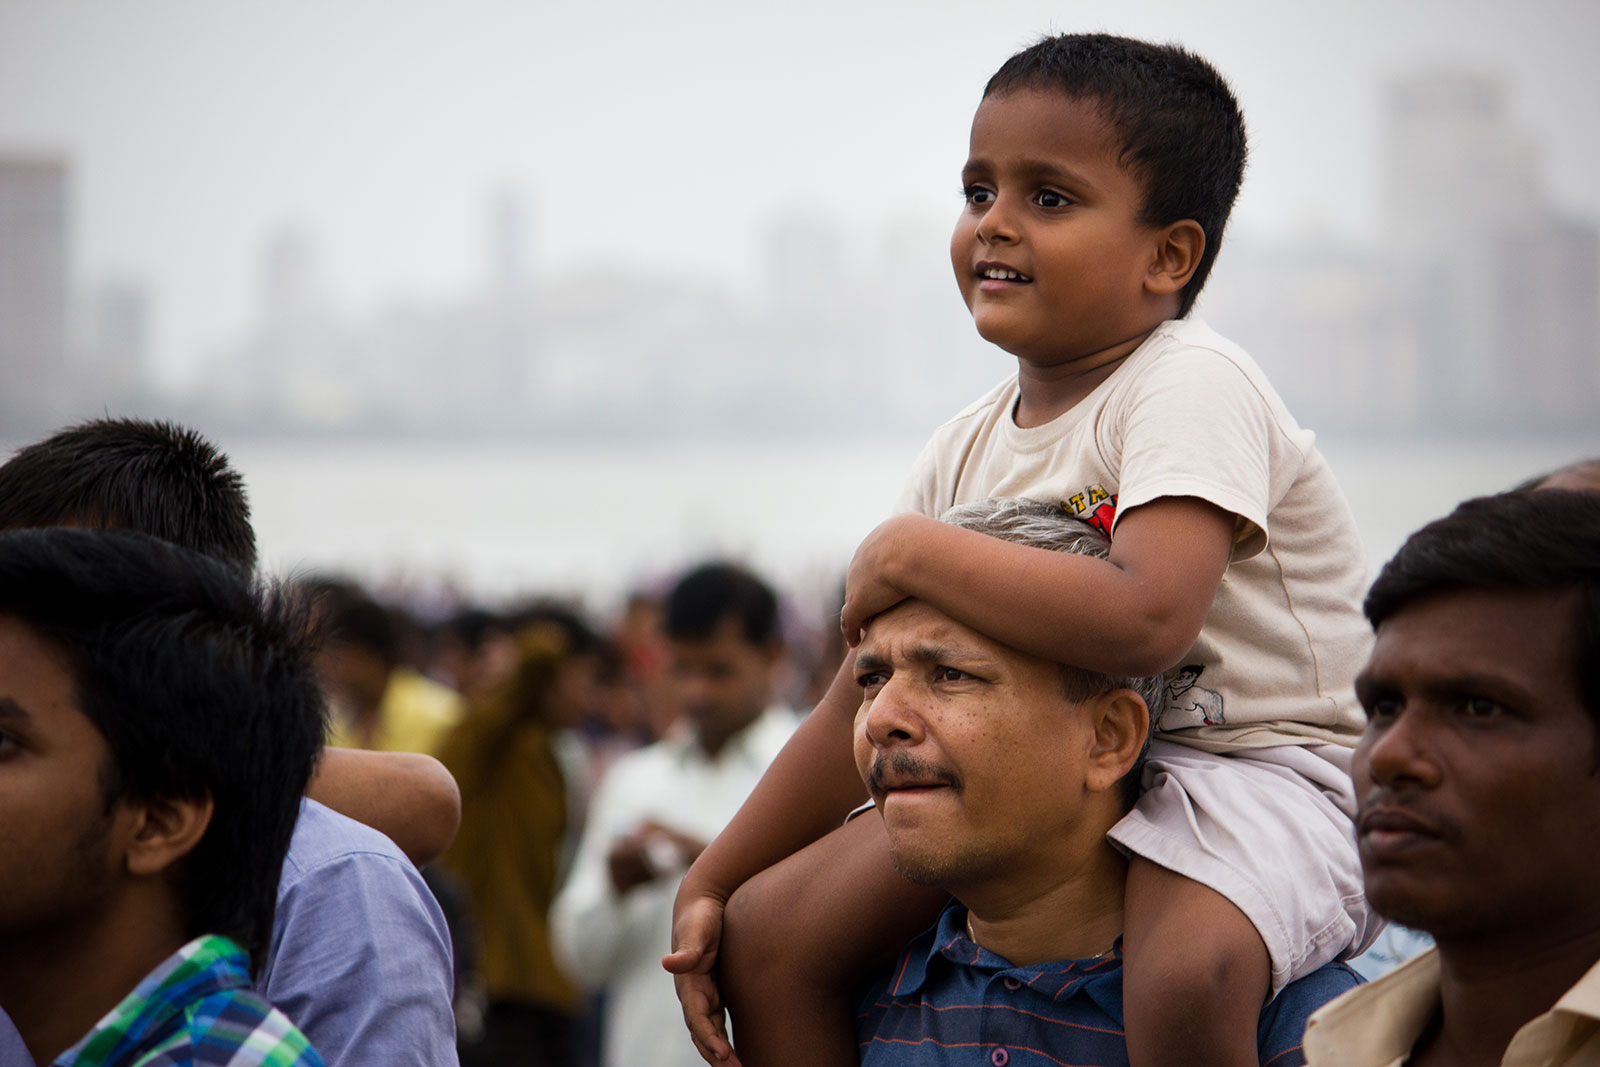 Portrait of smiling Boy Sitting on His Dads Shoulders